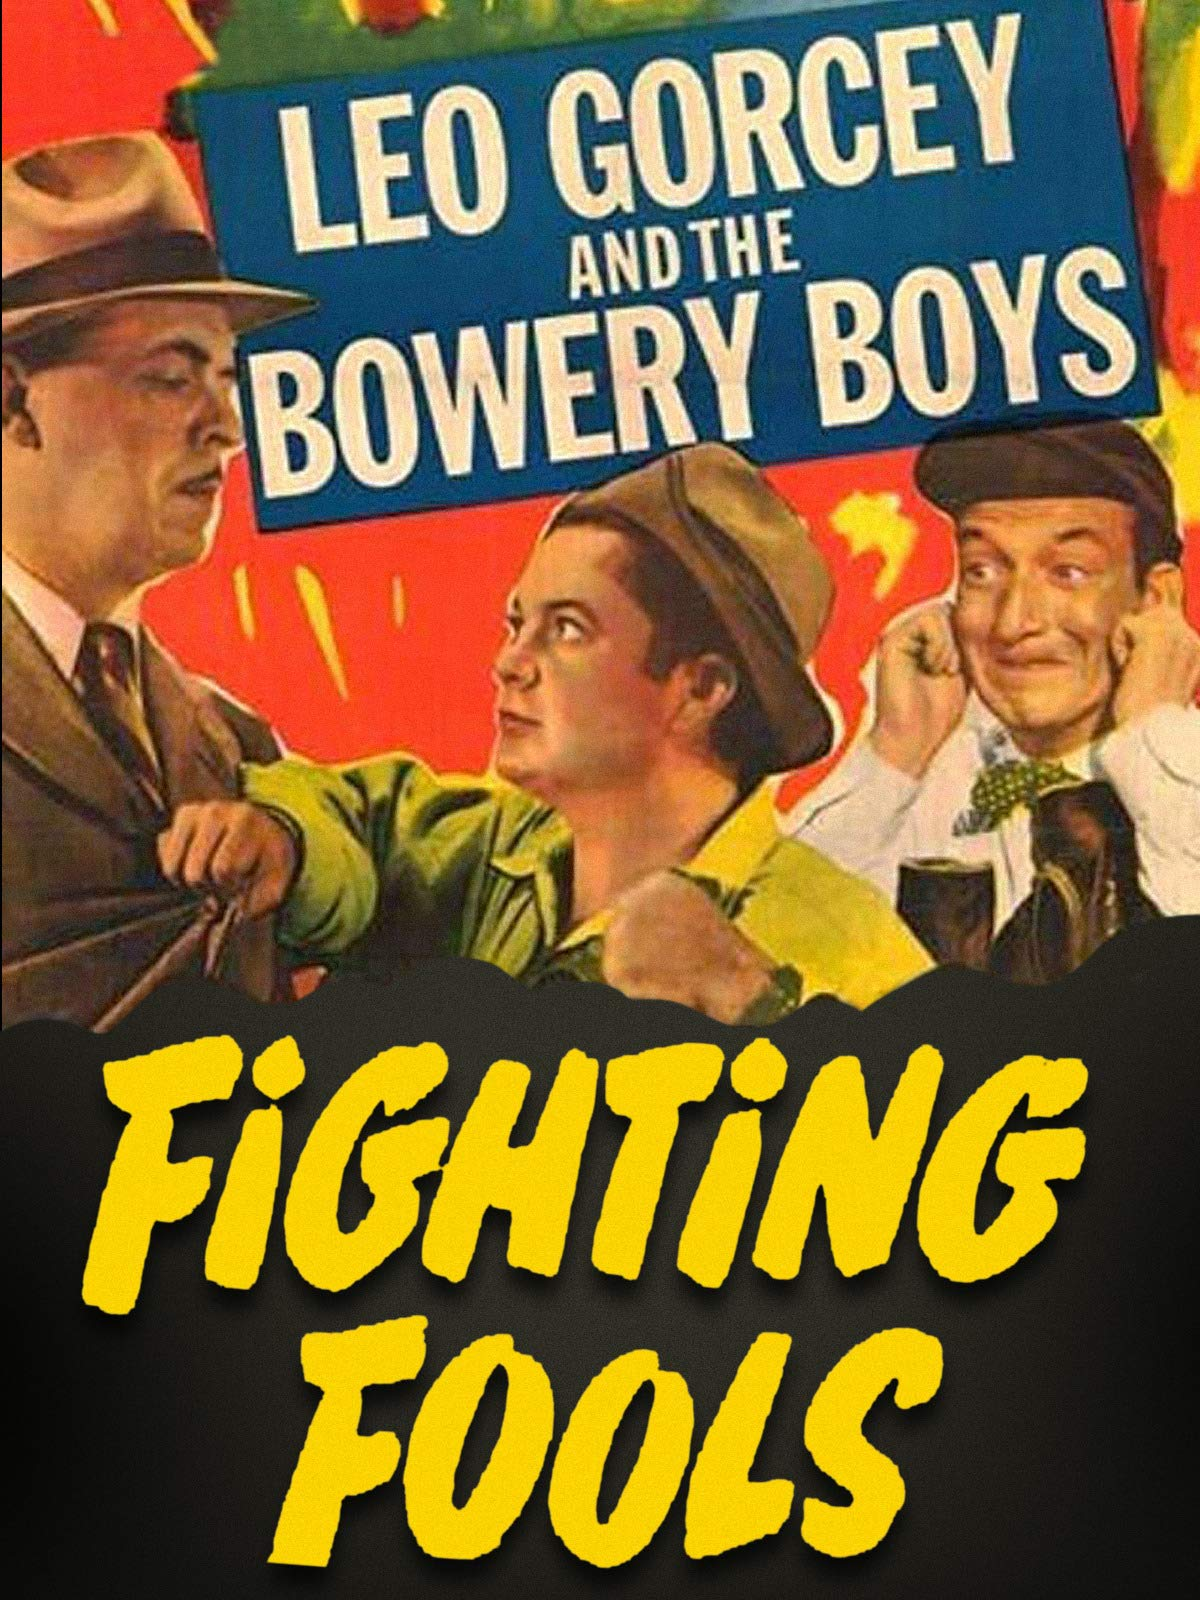 Fighting Fools - Leo Gorcey & The Bowery Boys on Amazon Prime Video UK